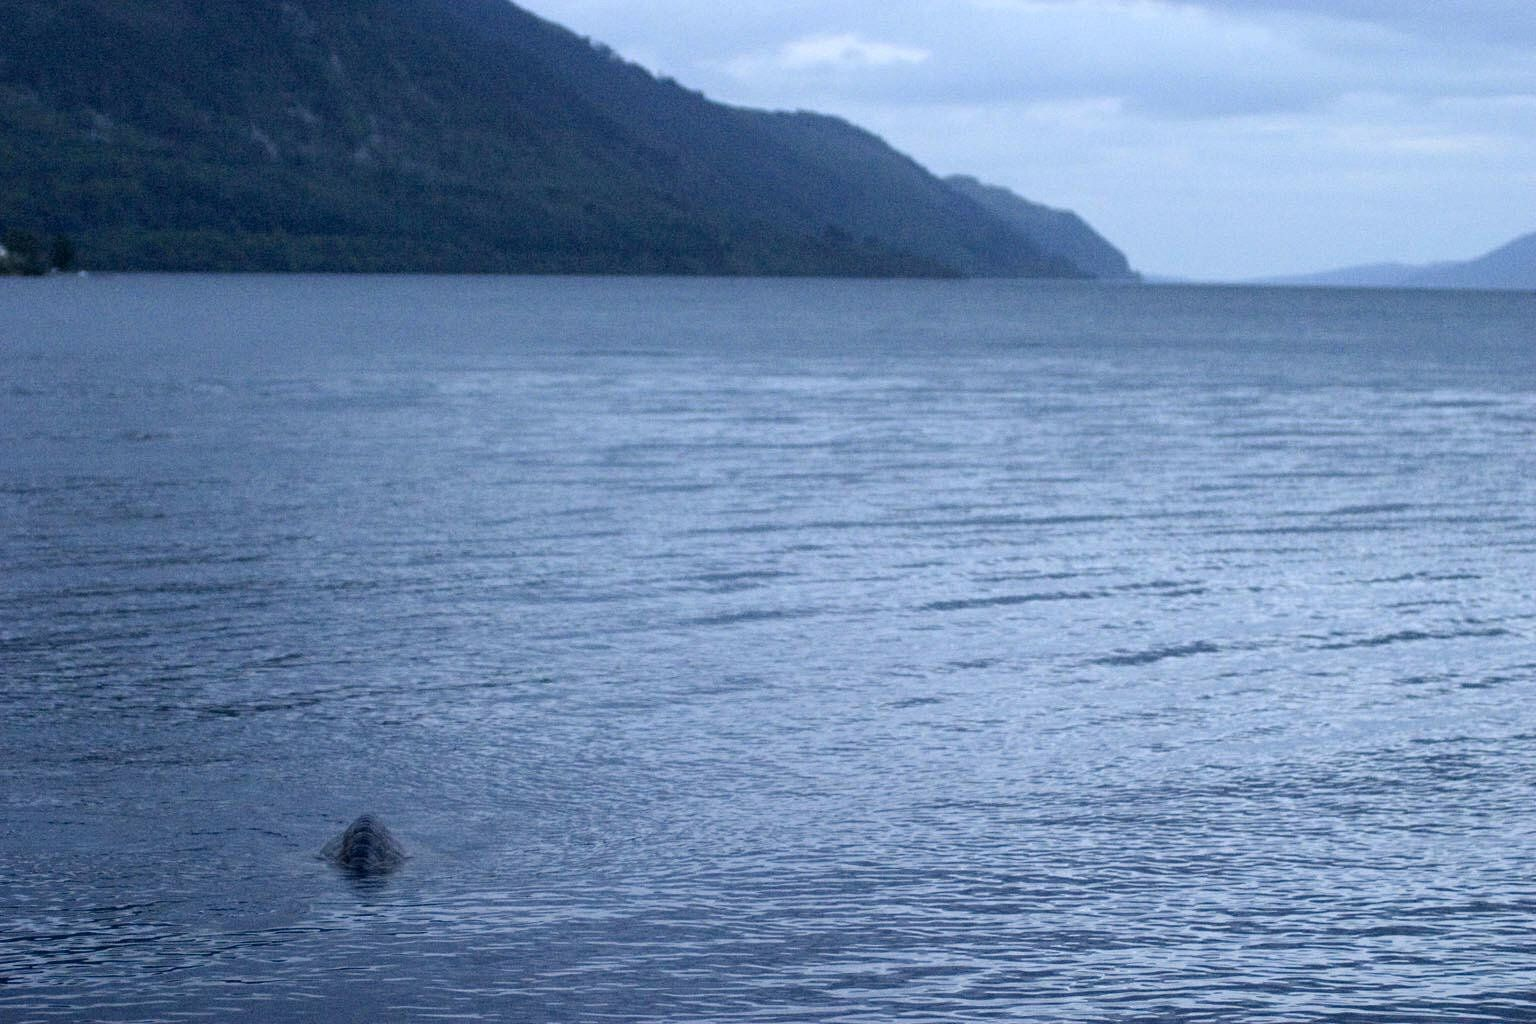 Have a team of scientists discovered proof the Loch Ness Monster exists? (Picture: PA)